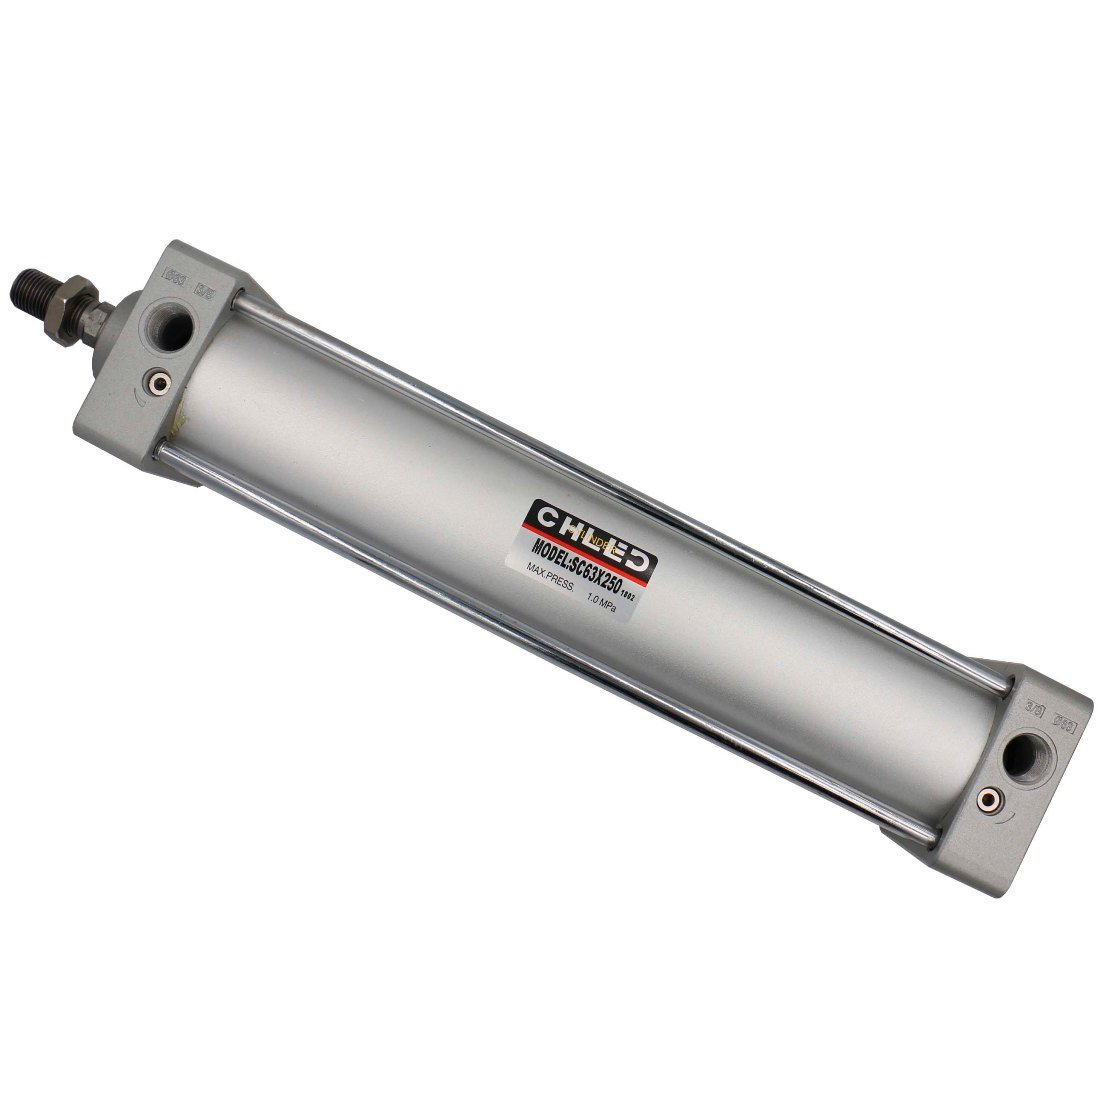 Baomain Standard Cylinder SC 63 X 250 G3/8'', Bore: 2 1/2 inch, Stroke: 10 inch, Screwed Piston Rod Double-action type